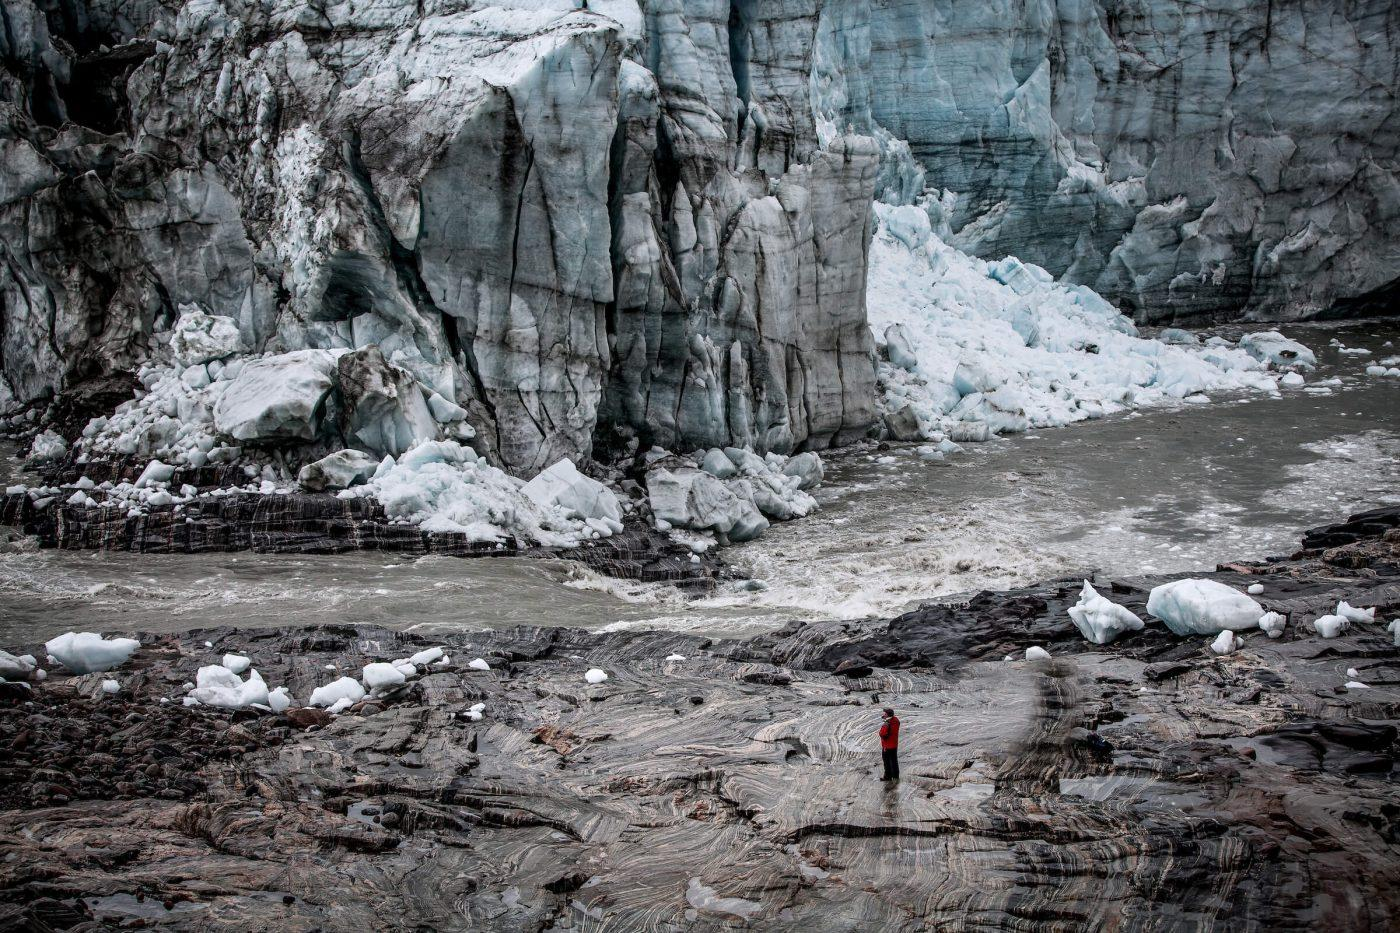 People are easily dwarfed by the size of the Russell Glacier wall near Kangerlussuaq in Greenland. Photo by Mads Pihl